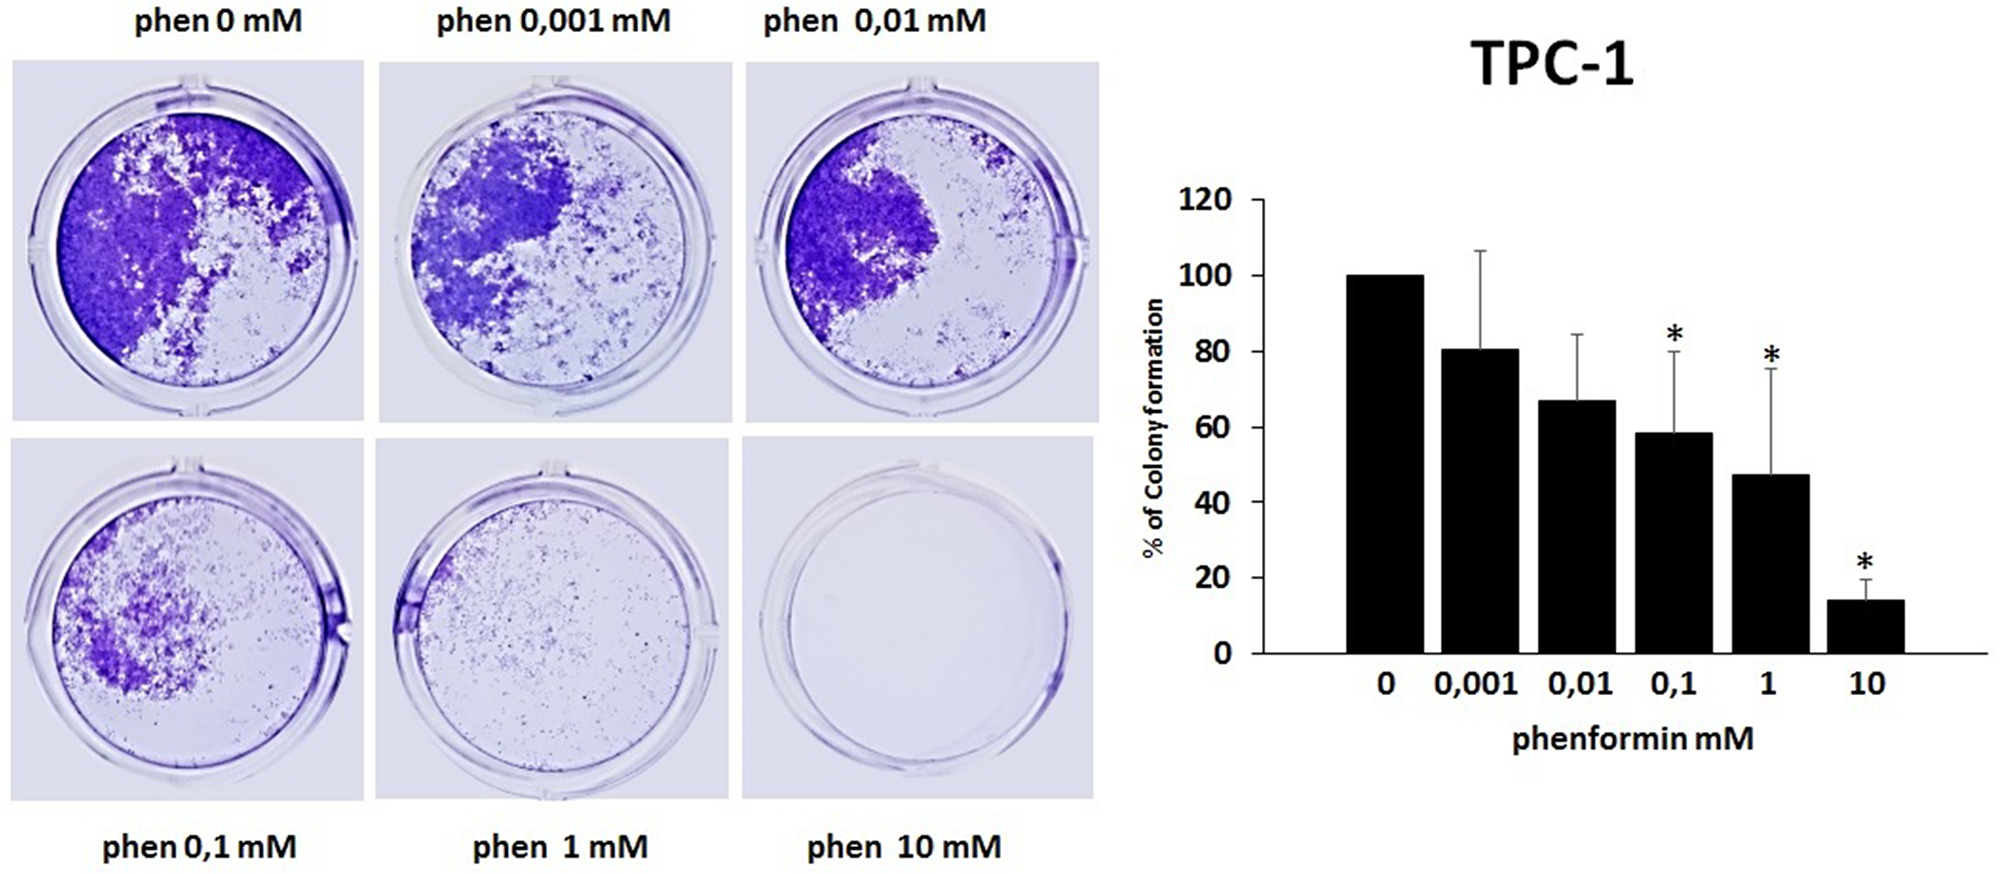 Effects of phenformin on TPC-1 cells ability to form colonies Colony formation assay was used to determine the long-term effects of phenformin on cell proliferation.